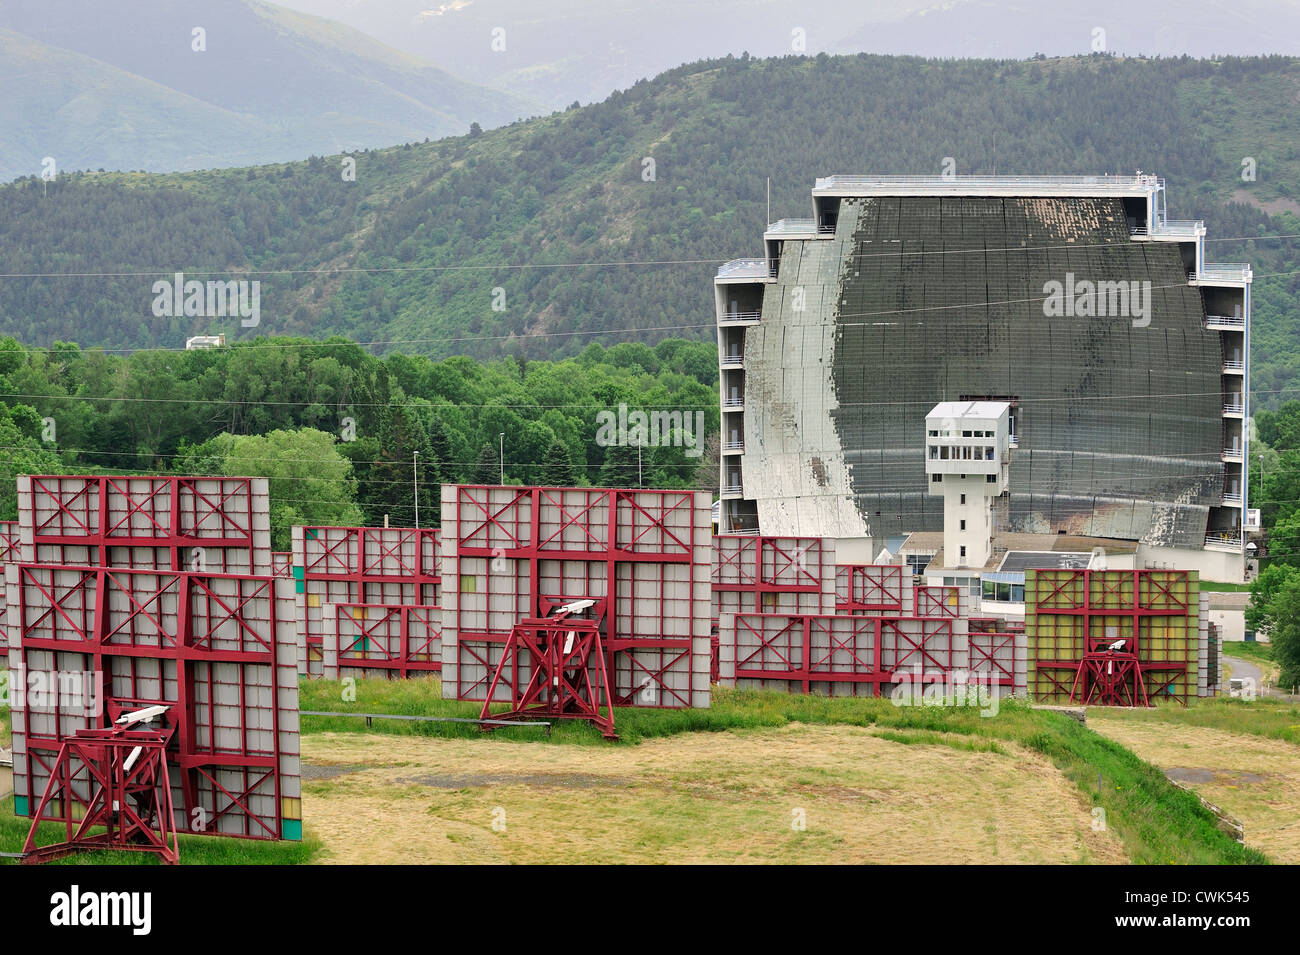 The solar furnace / Four solaire d'Odeillo at Odeillo in the Pyrénées-Orientales, Pyrenees, France - Stock Image